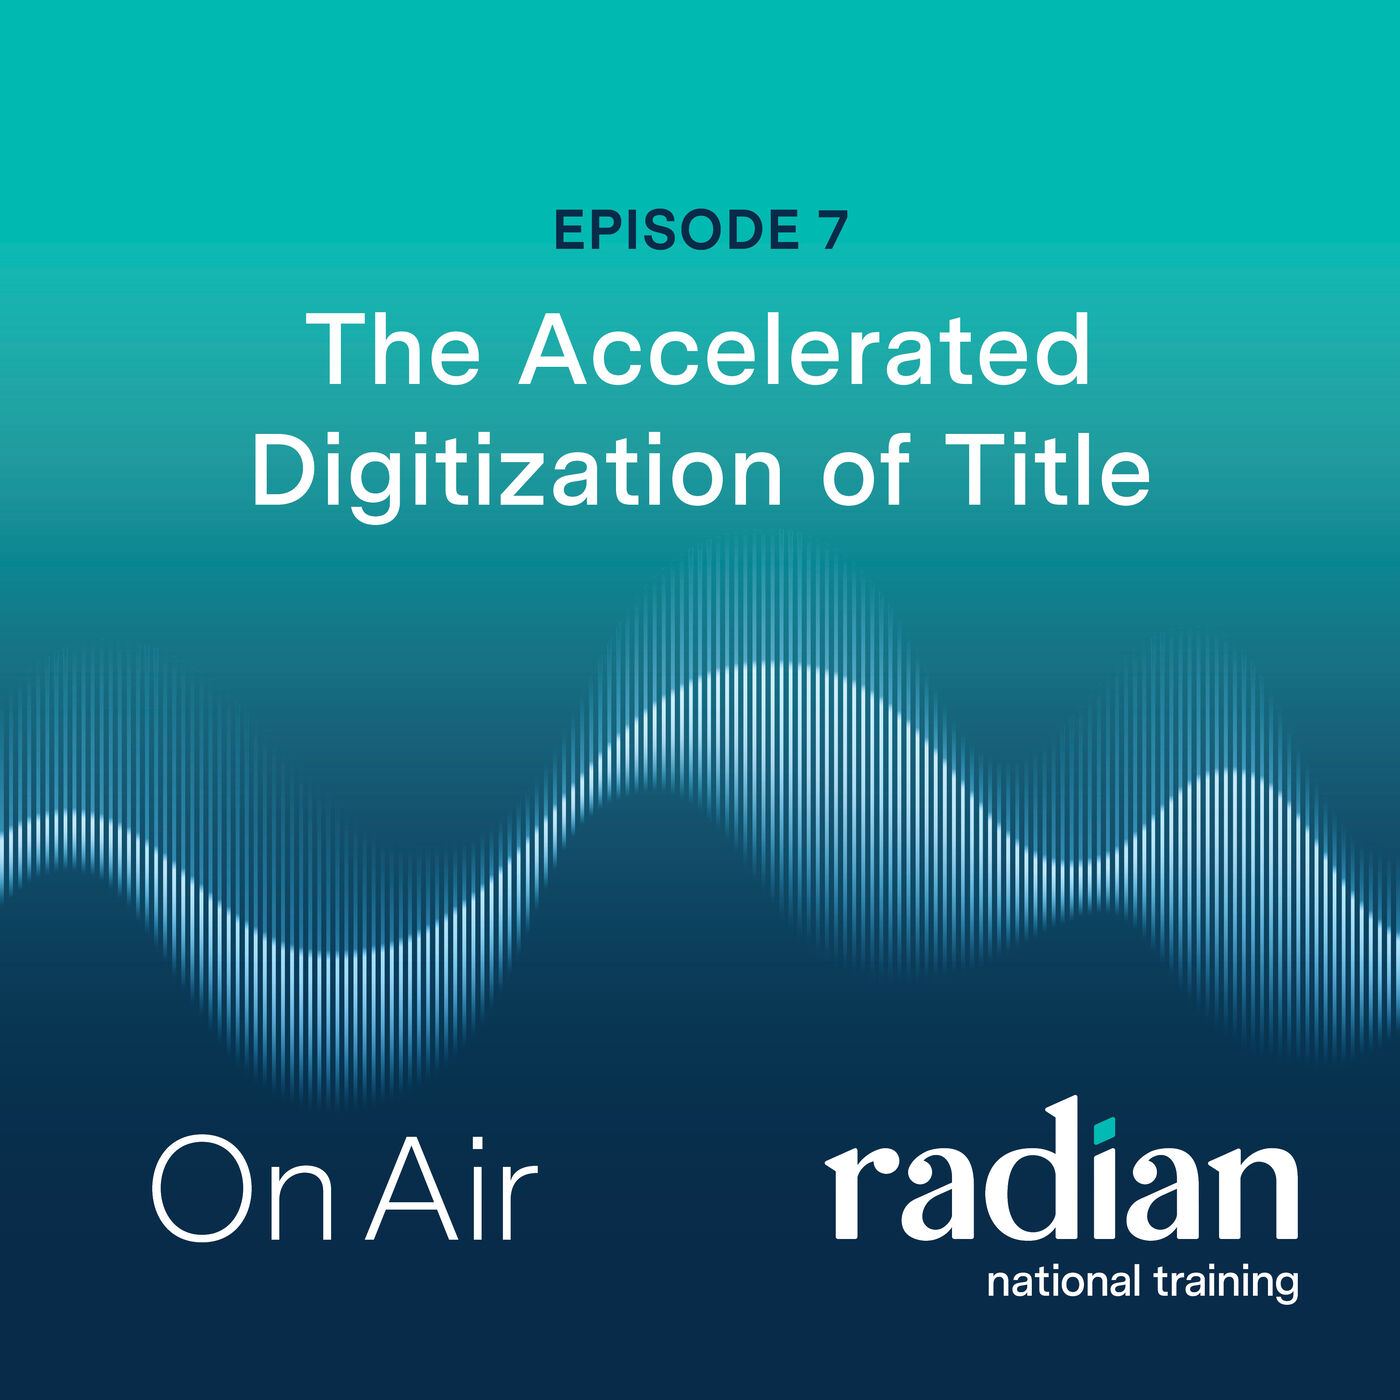 The Accelerated Digitization of Title